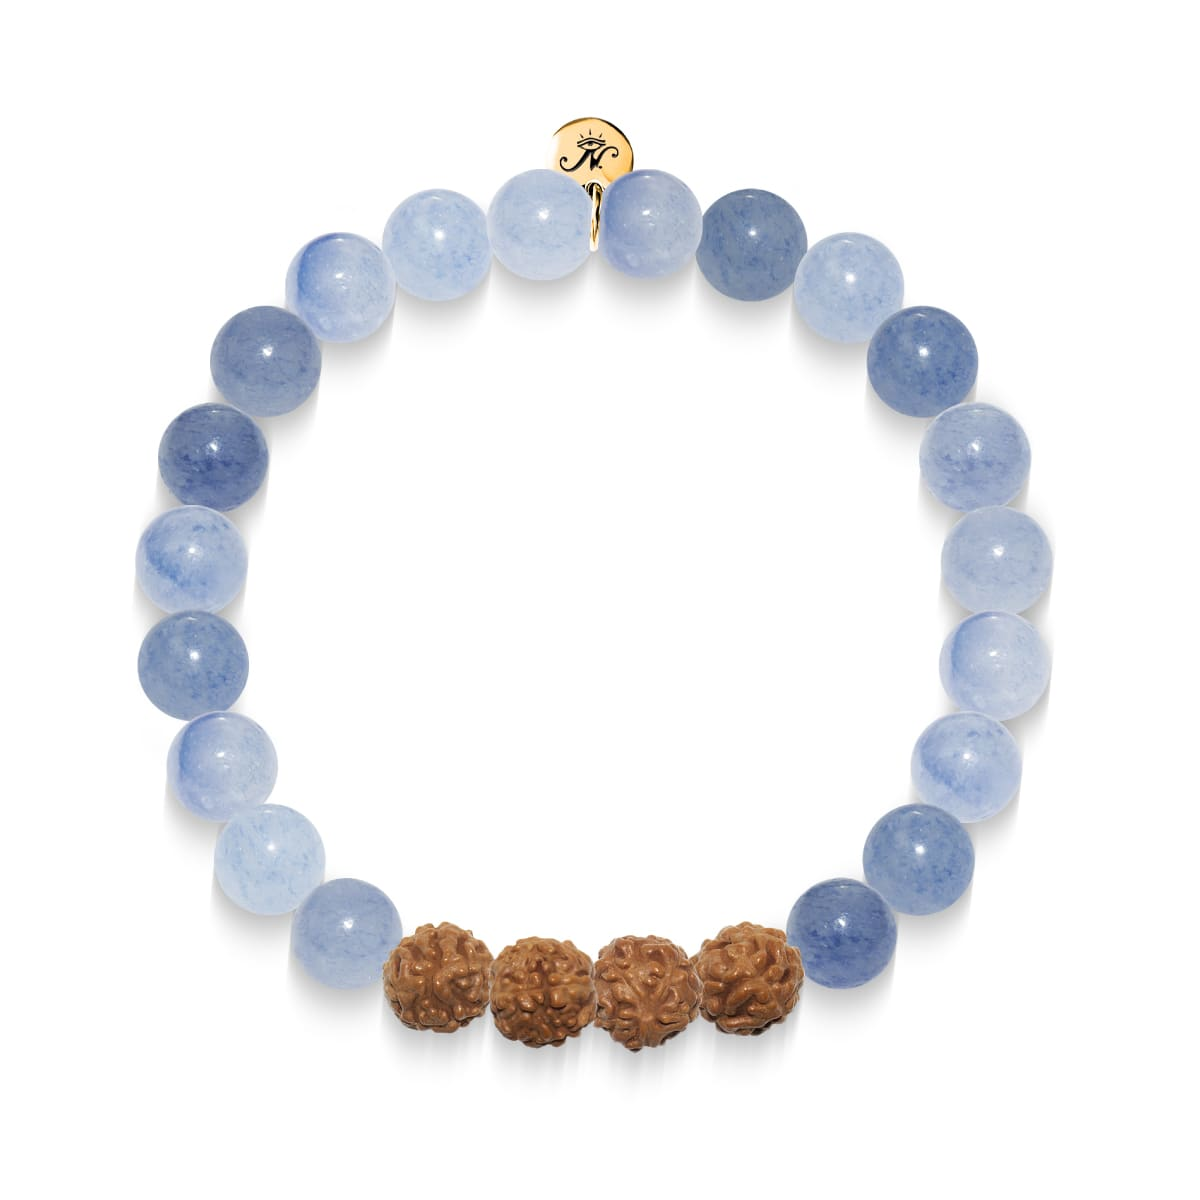 New Beginnings | Gold Mala Yoga Bracelet | Blue Aventurine